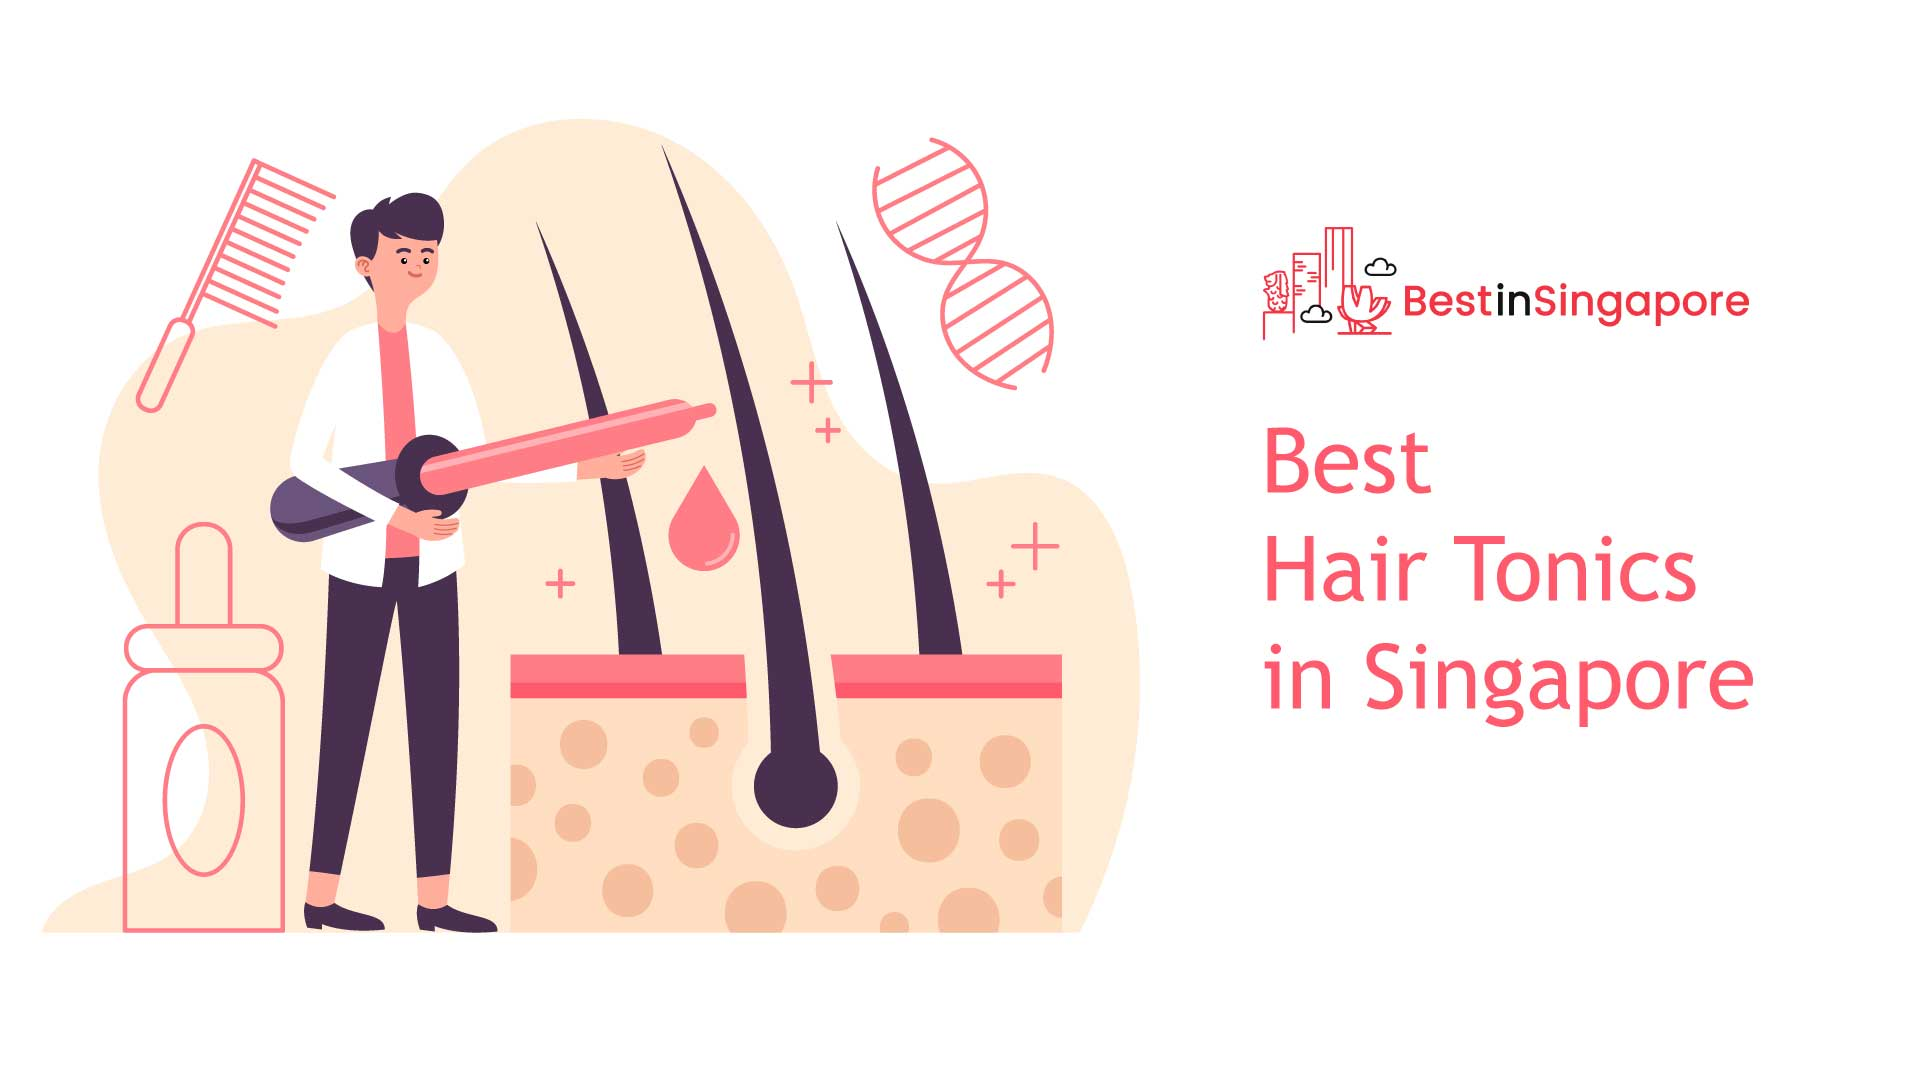 Best Hair Tonics in Singapore